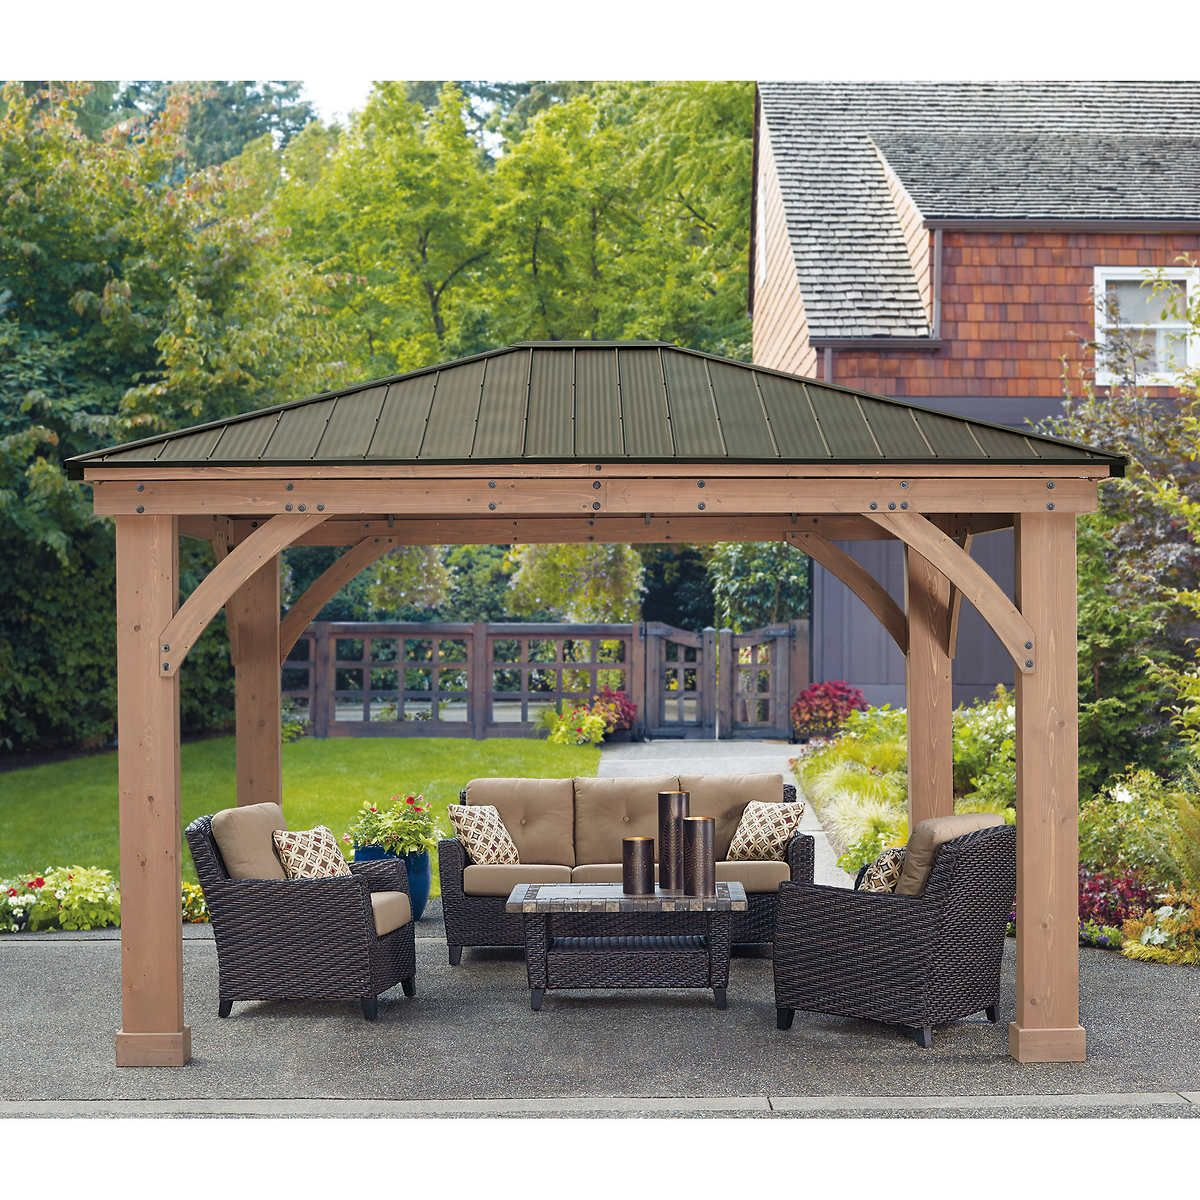 12 X 14 Big Cedar Gazebo With Aluminum Roof Outdoor Pergola Patio Gazebo Pergola Patio